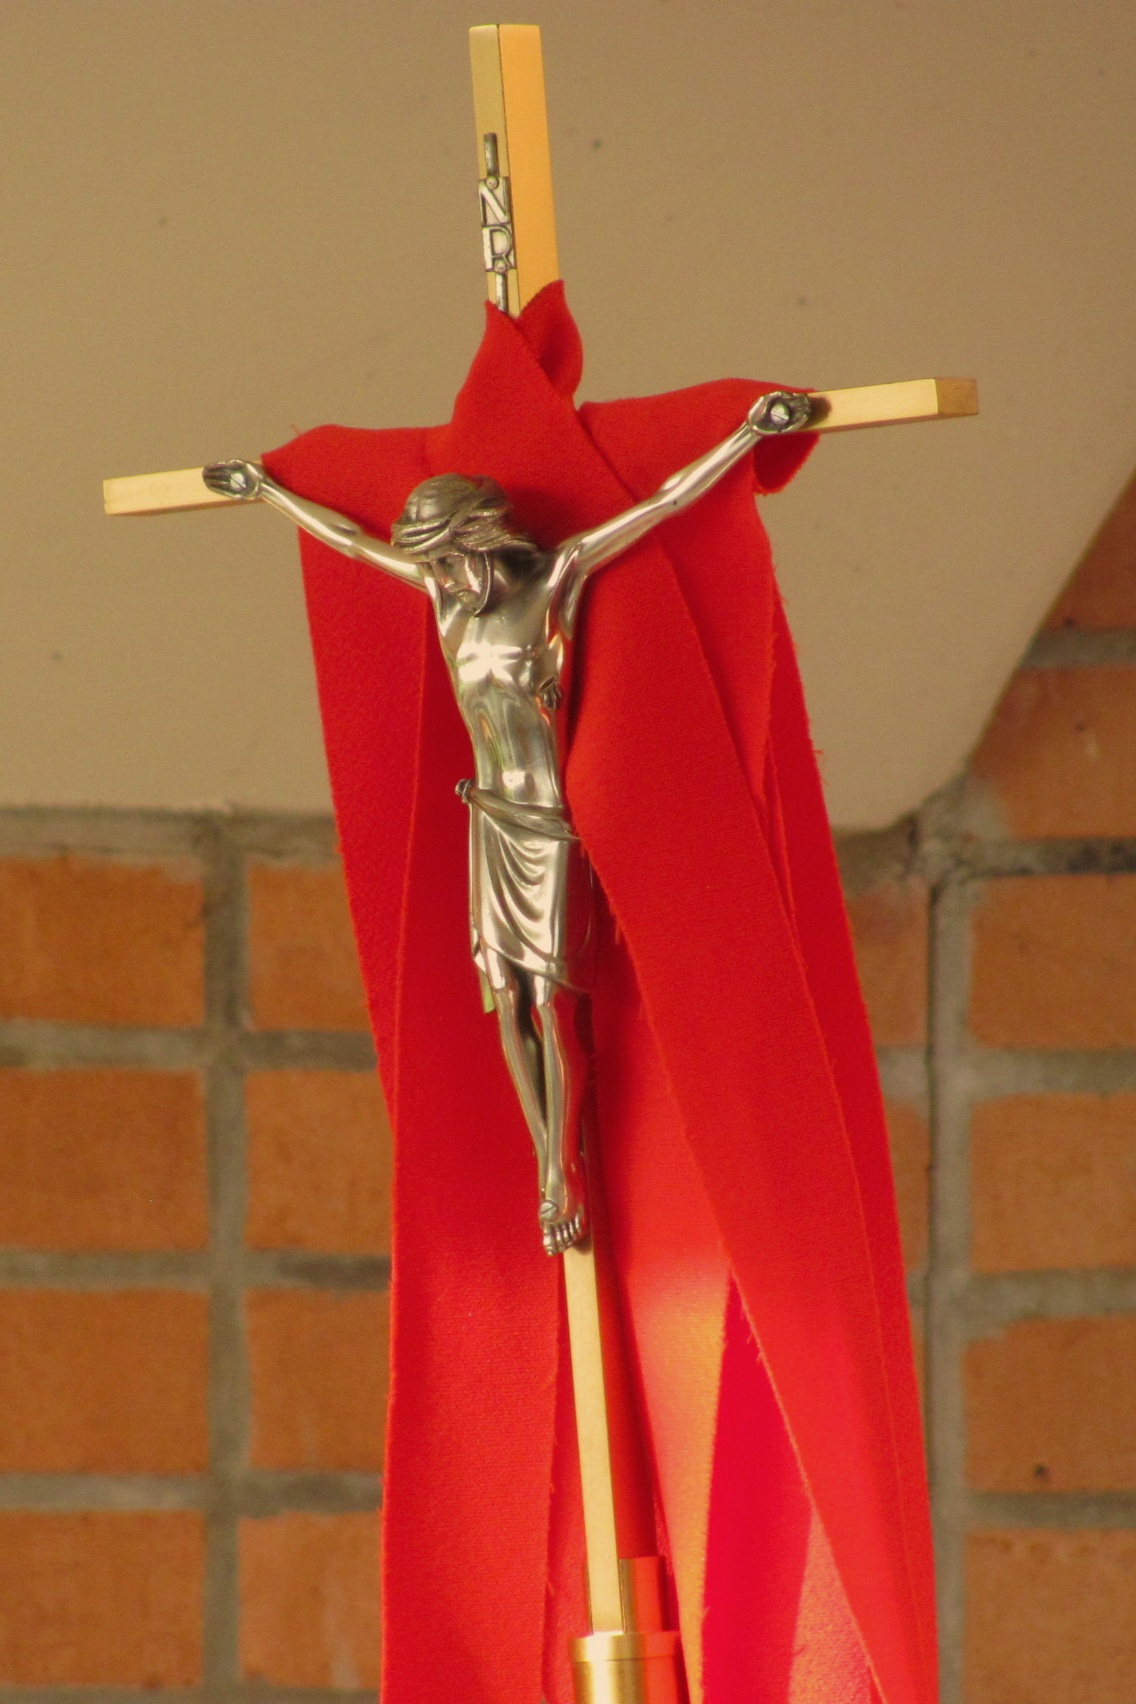 Holy Week - Entering into the Paschal Mystery